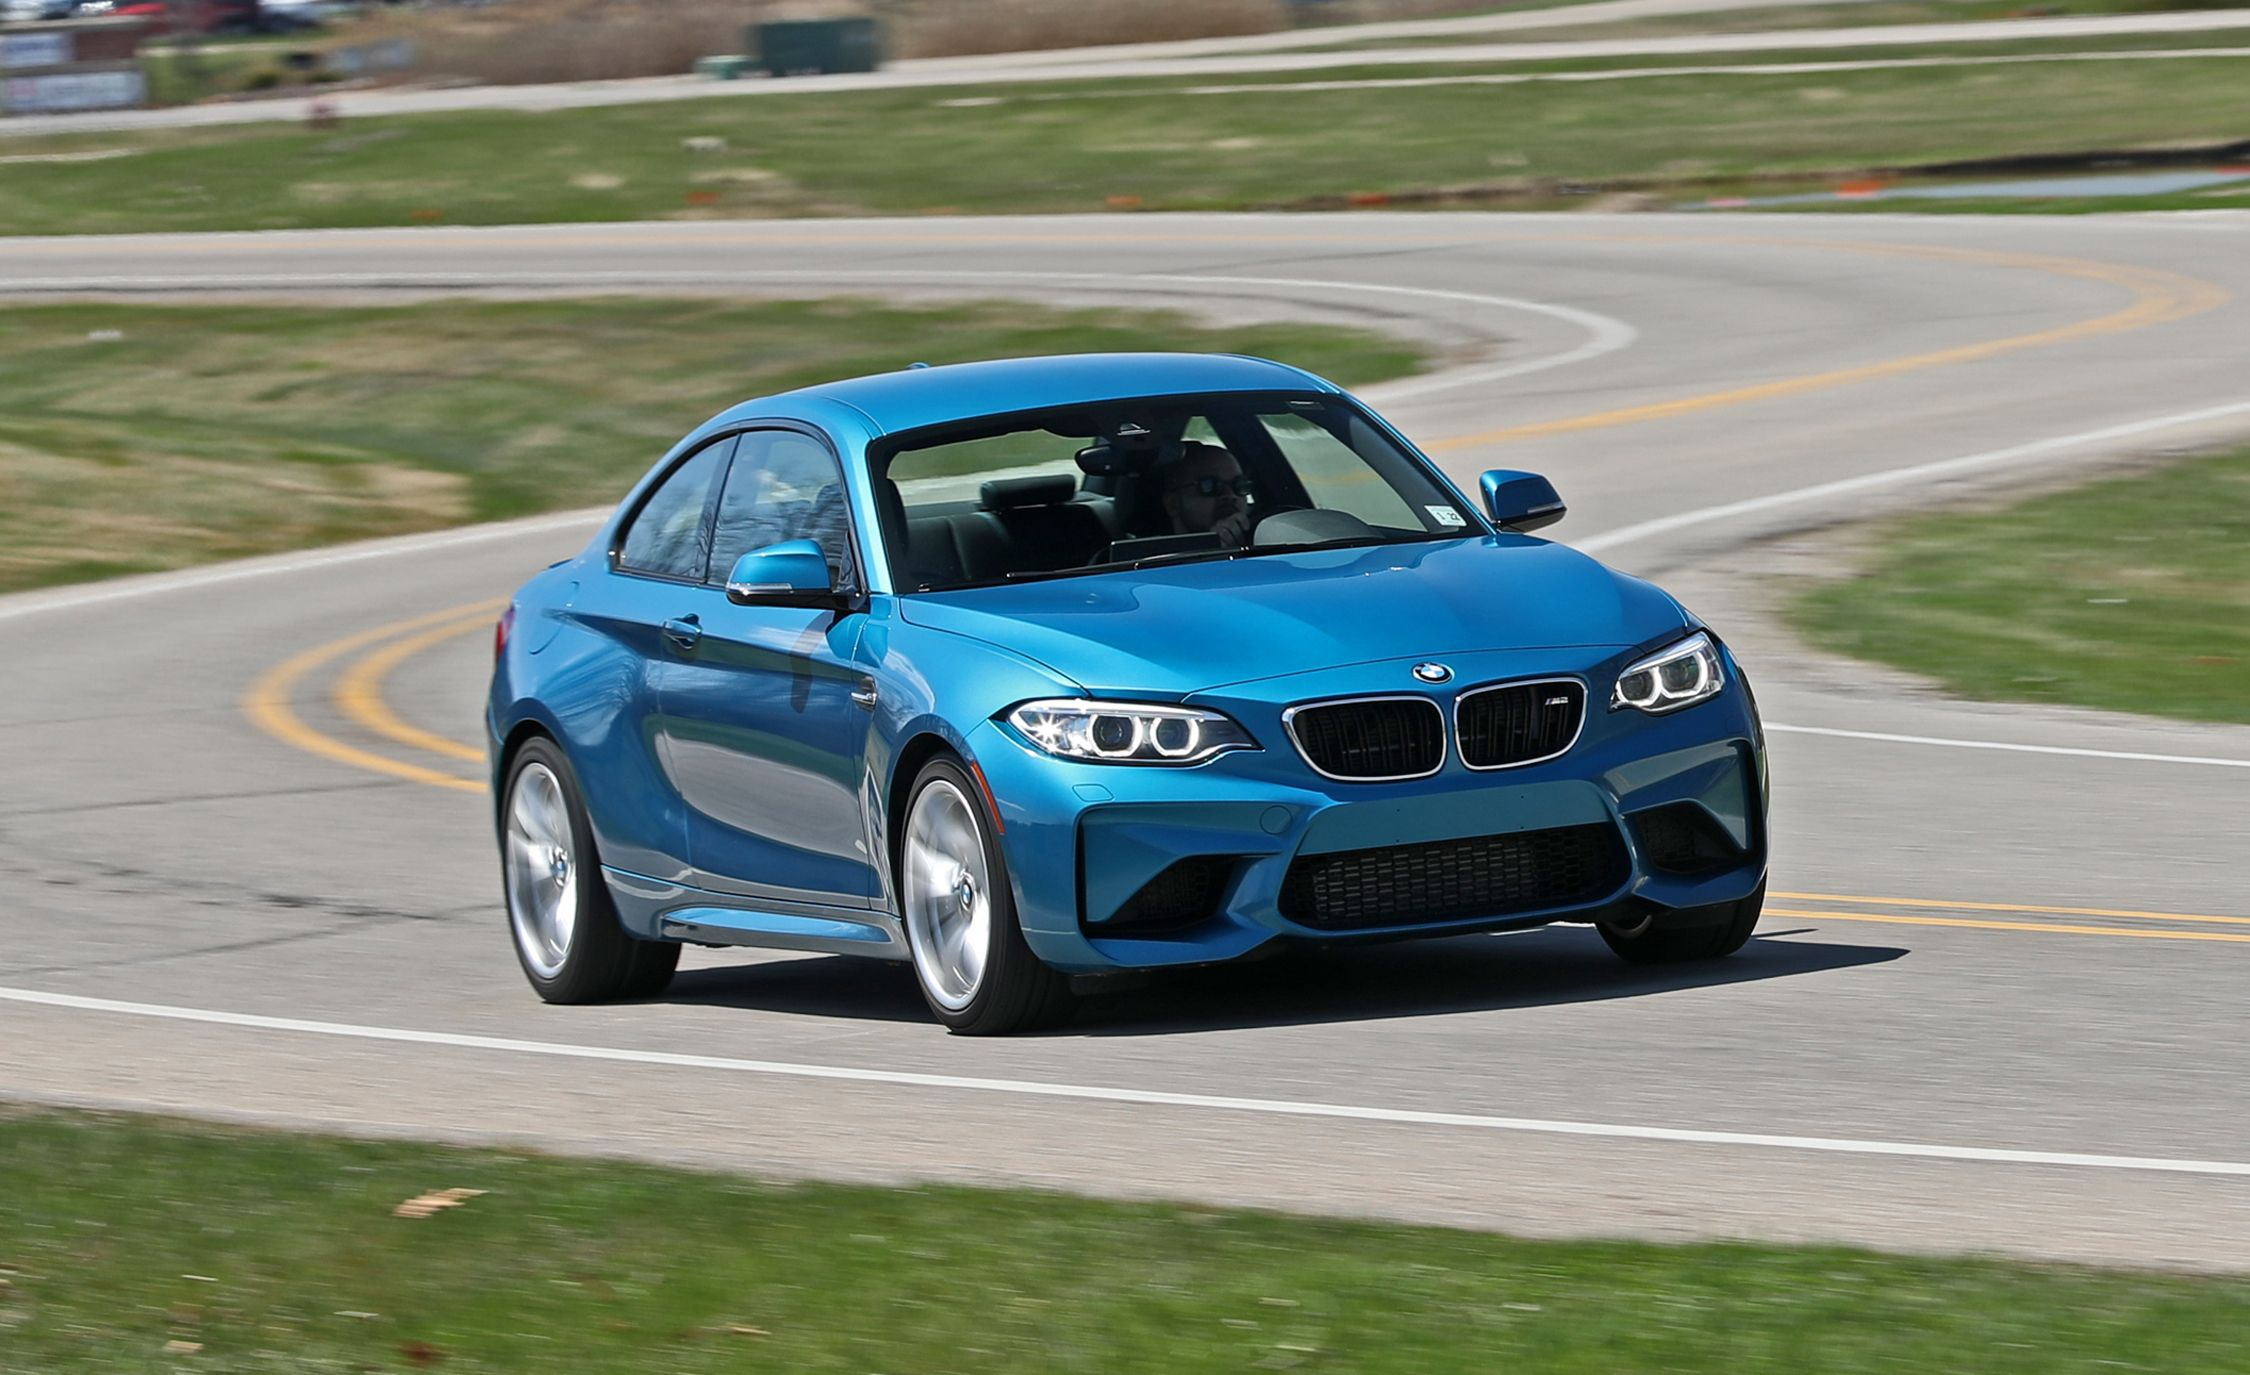 2017 BMW M2 30,000-Mile Reliability Update